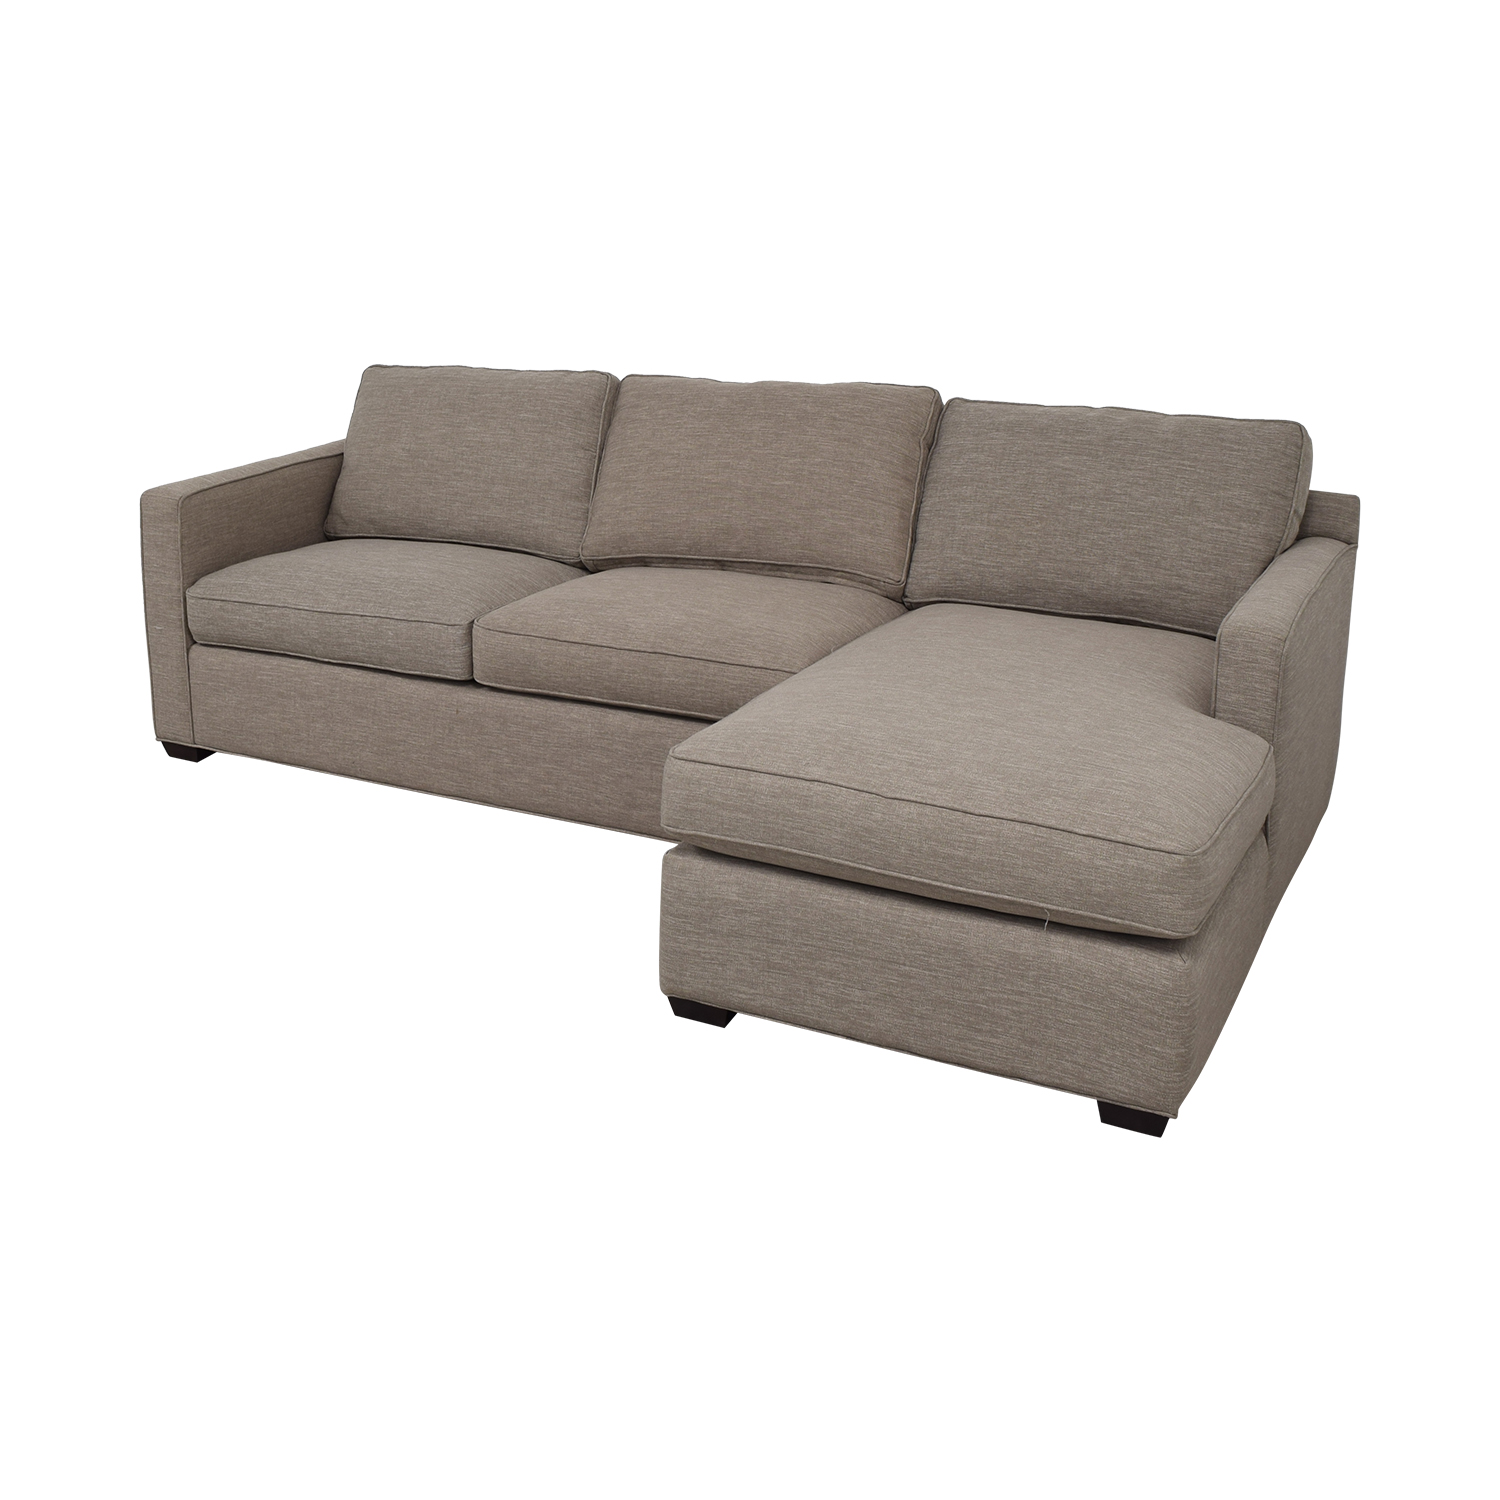 Crate & Barrel Grey Chaise Sectional / Sofas